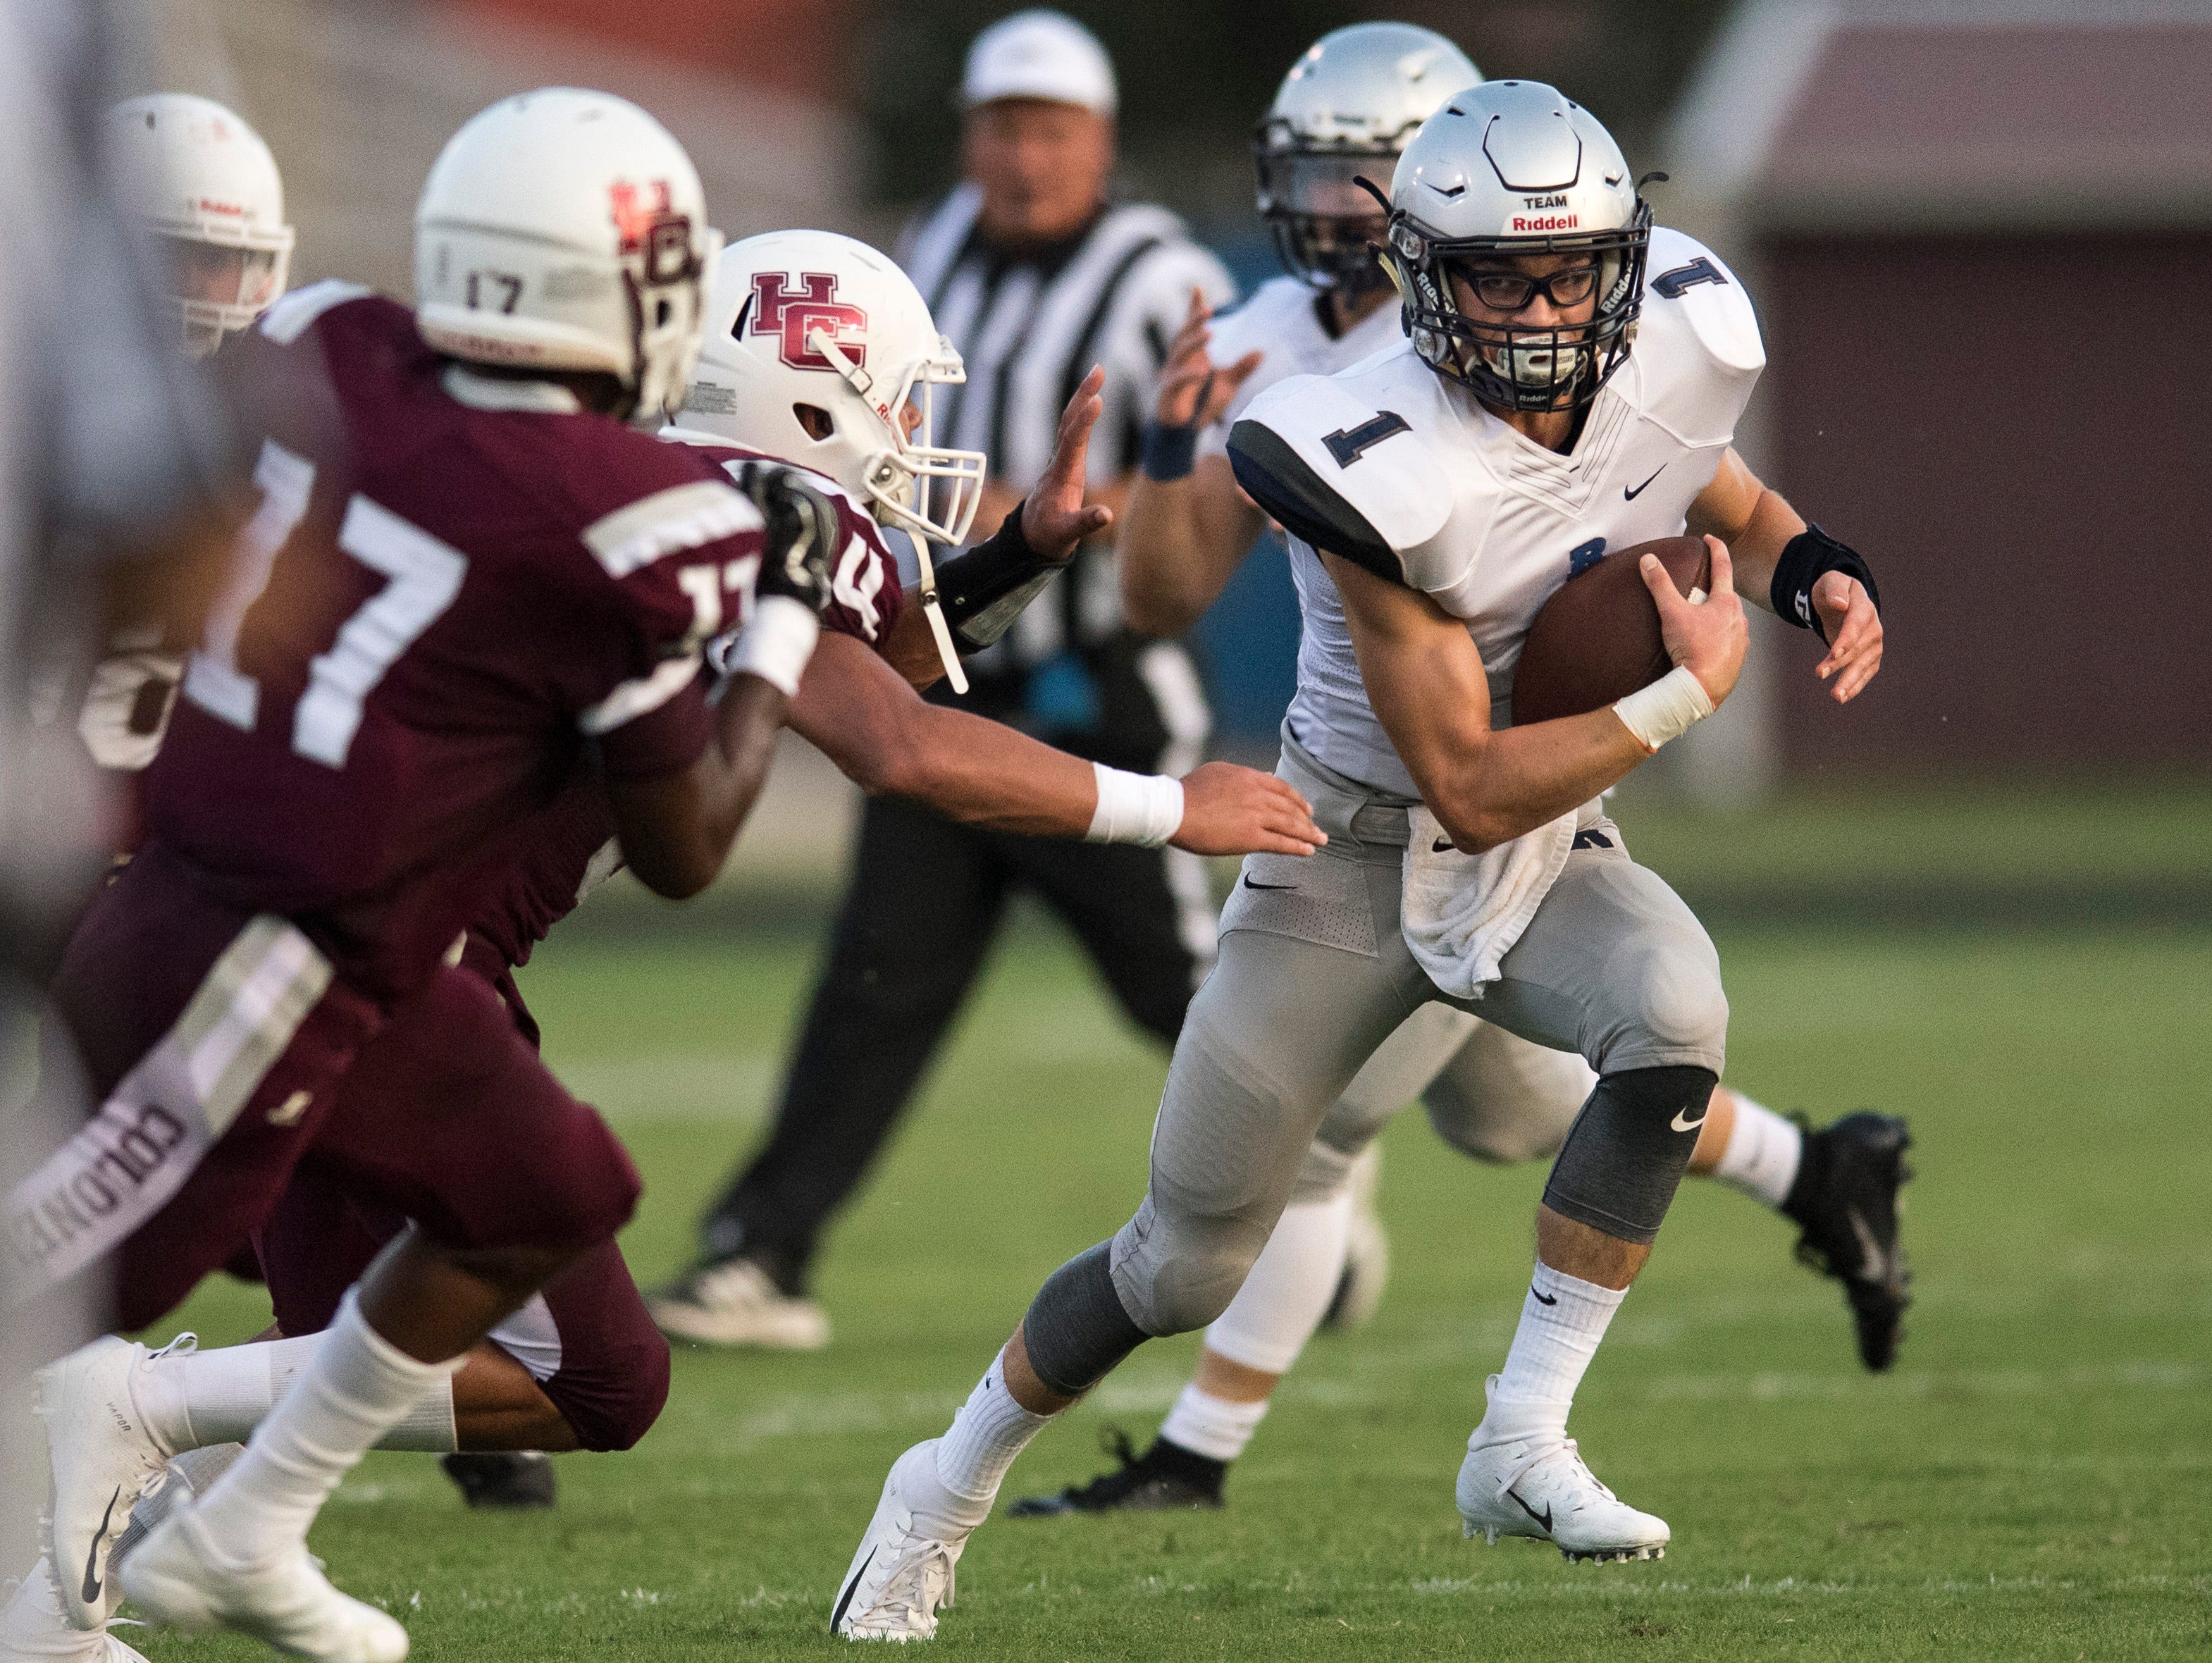 Reitz's Quarterback Eli Wiethop (1) attempts to run through Henderson County defense during the Reitz vs Henderson County football game Colonels Stadium Friday, August 17, 2018.  The Panthers defeated the Colonels 41-35 in the season opening game.